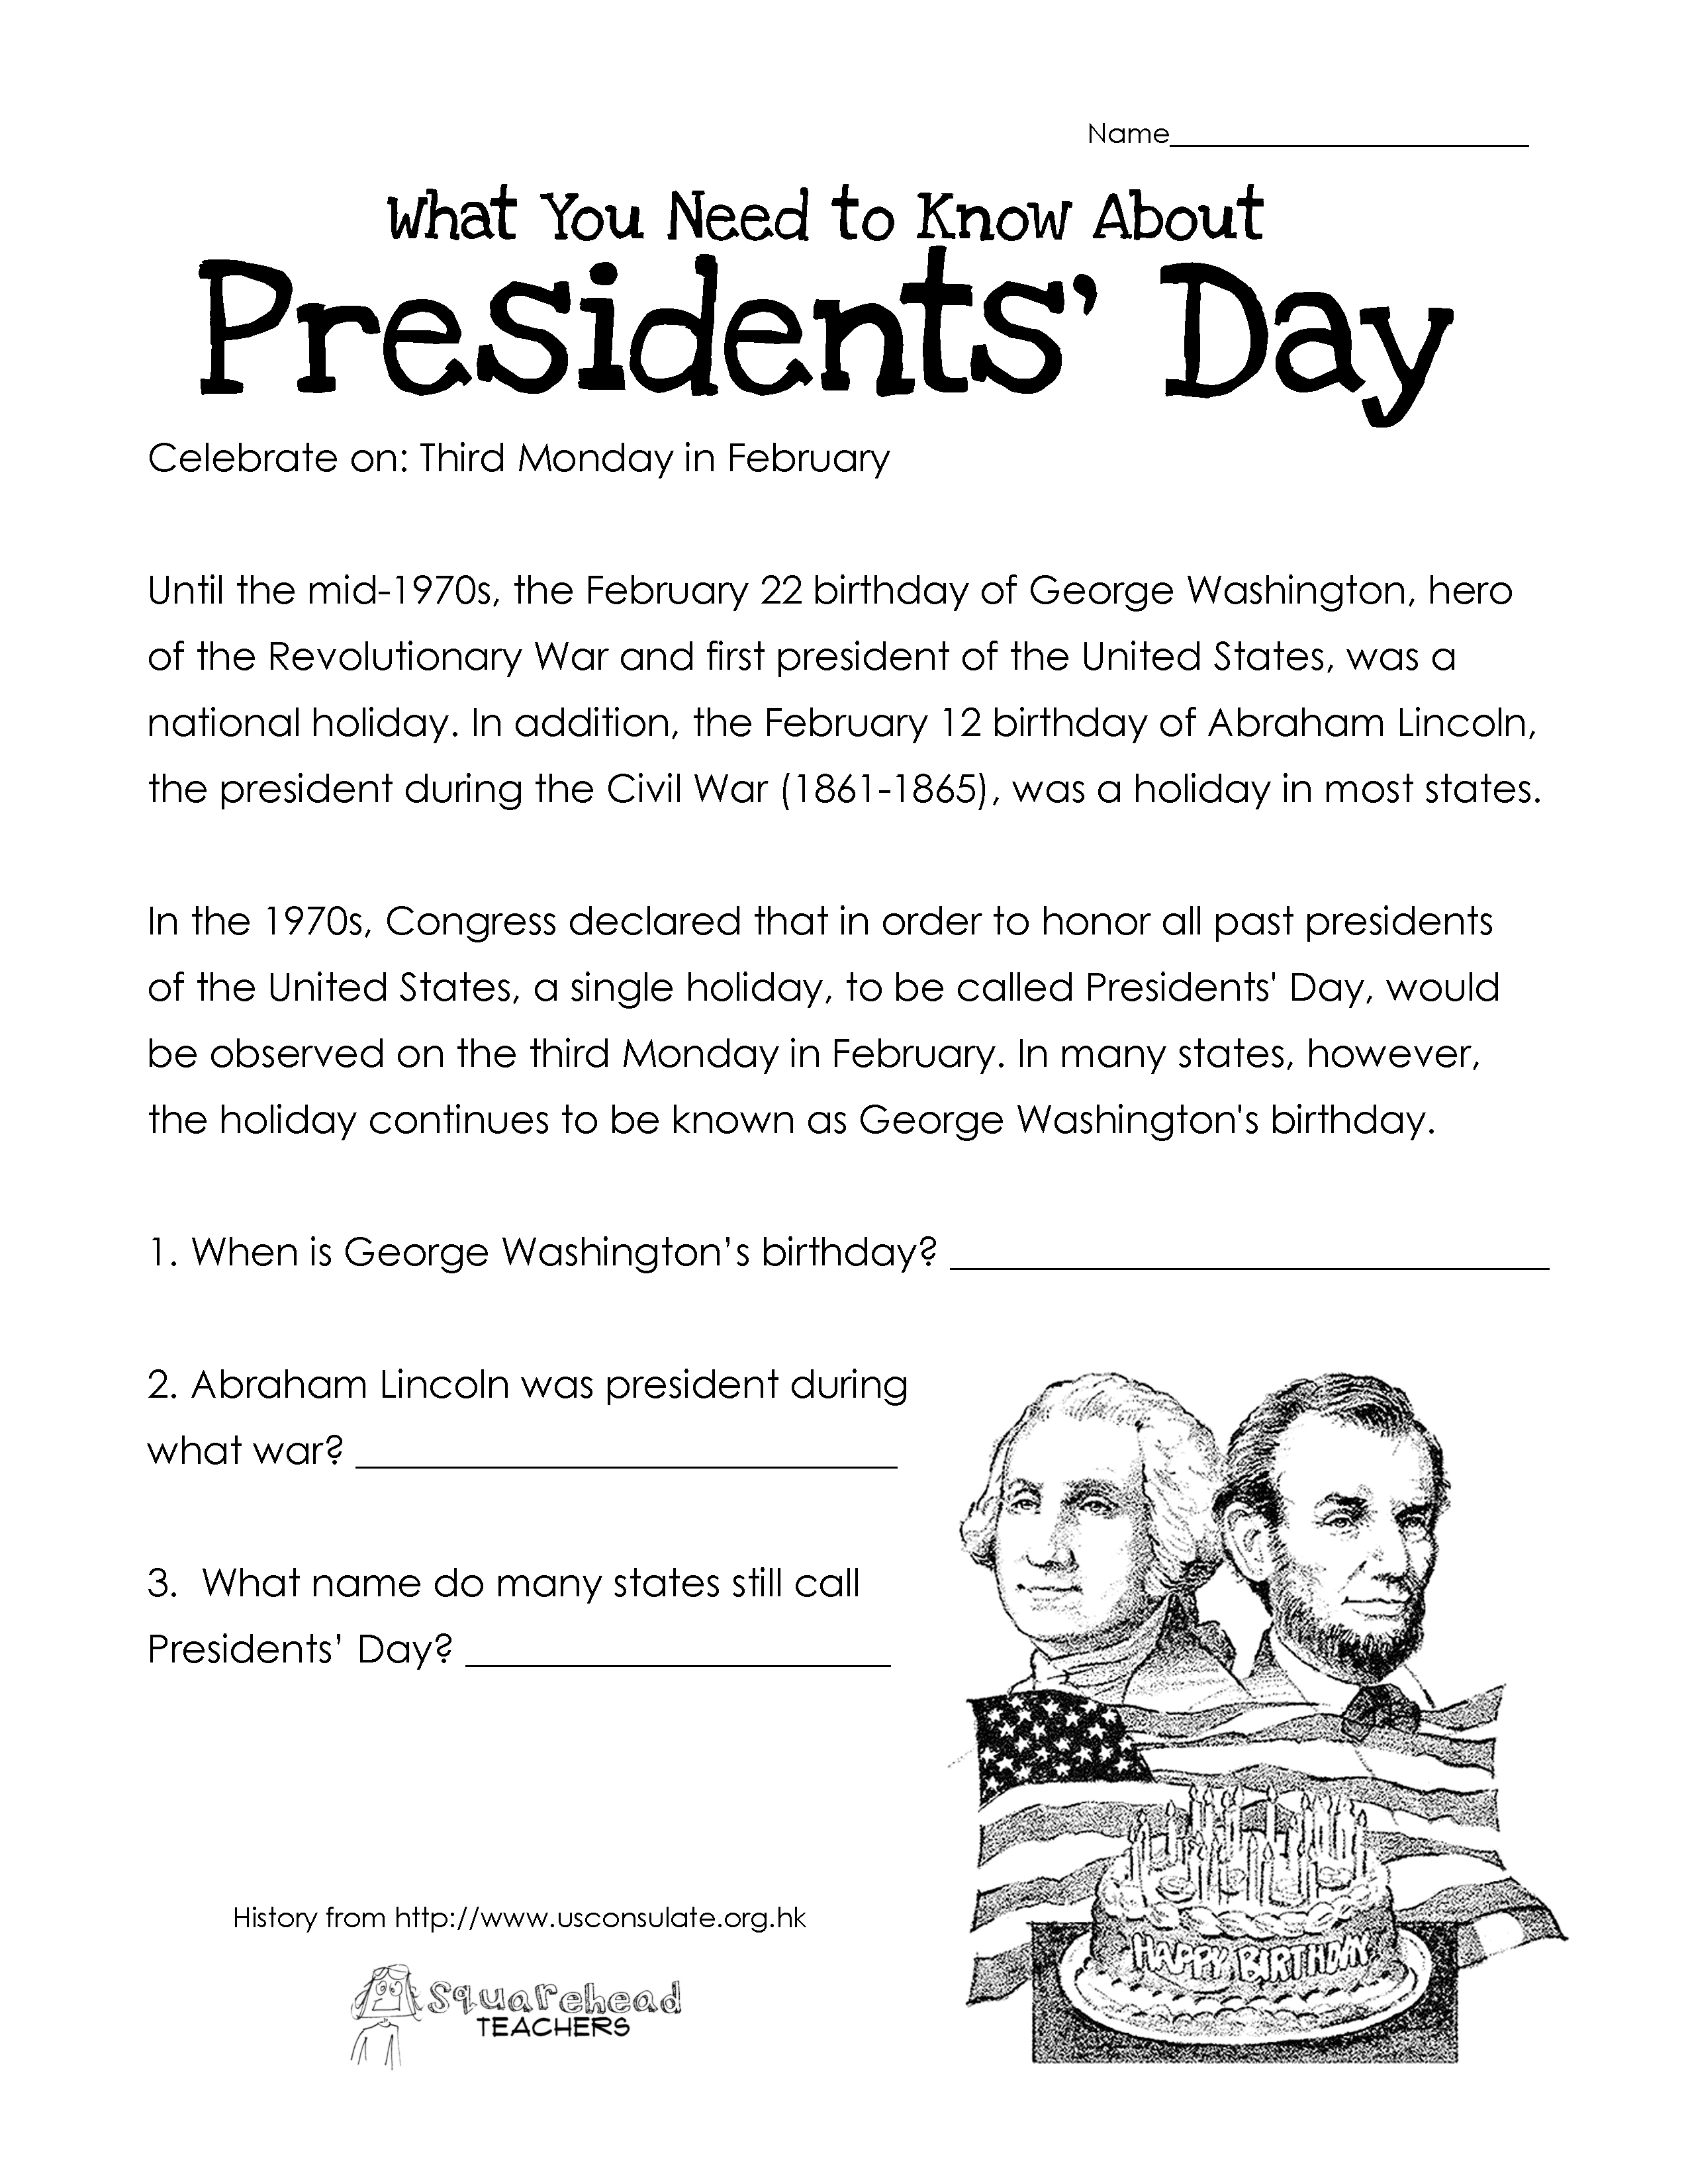 Worksheet : Presidents Day Free Updated Squarehead Teachers Printabl | Free Printable Presidents Day Worksheets